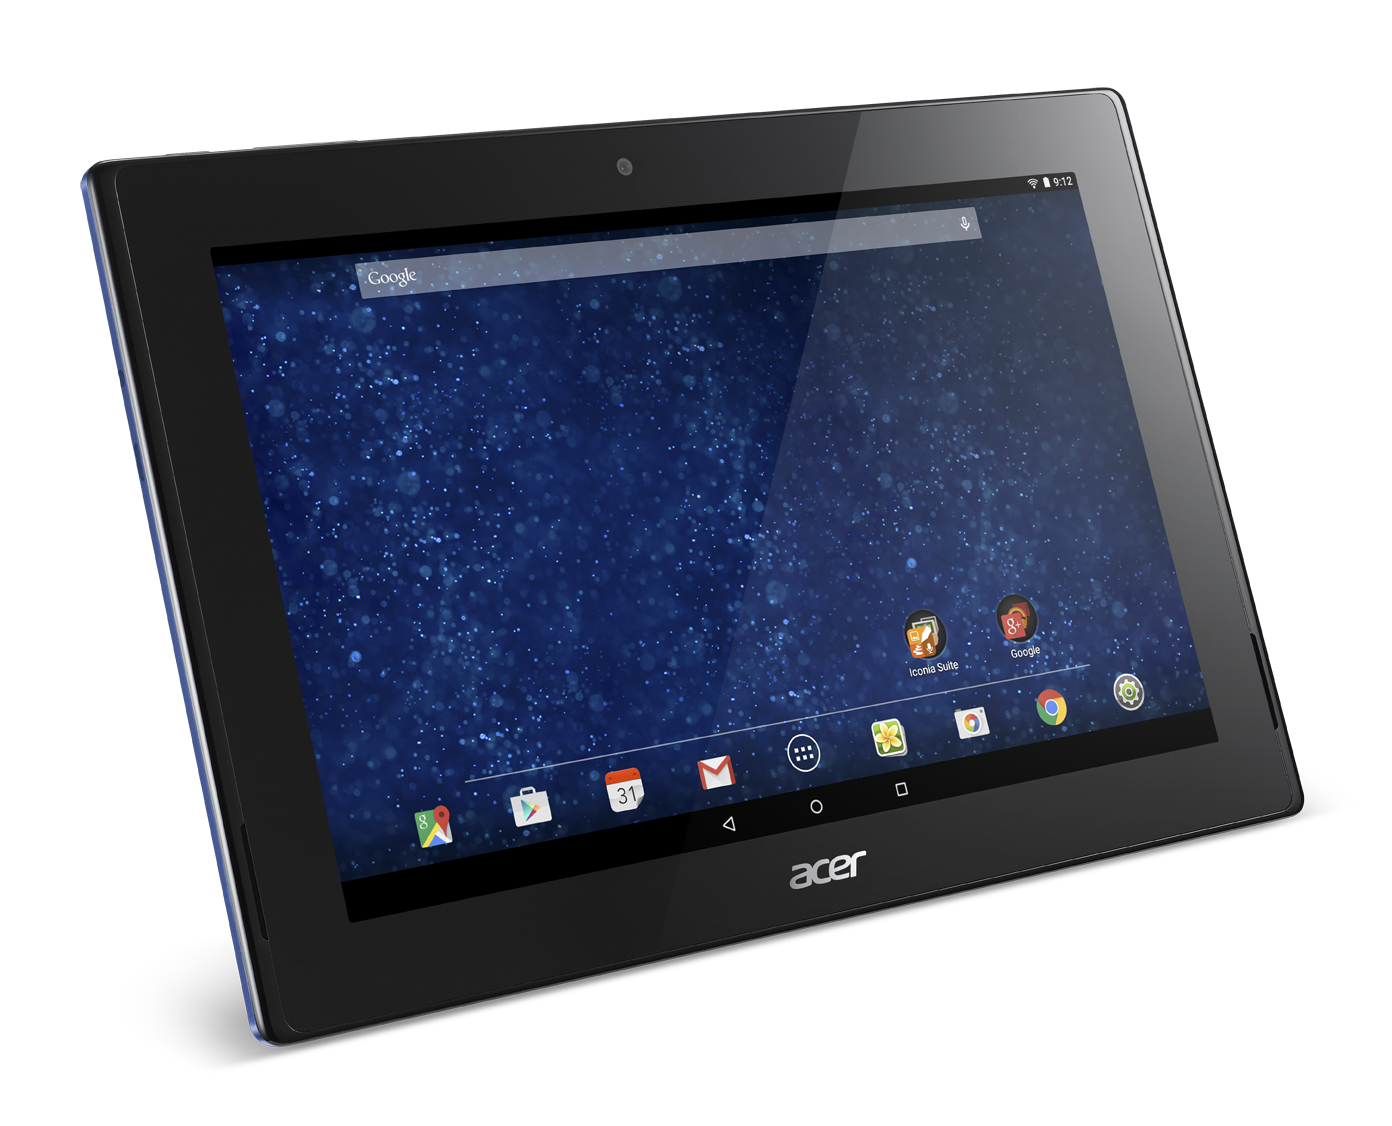 acer officialise une iconia tab 10 avec google for. Black Bedroom Furniture Sets. Home Design Ideas